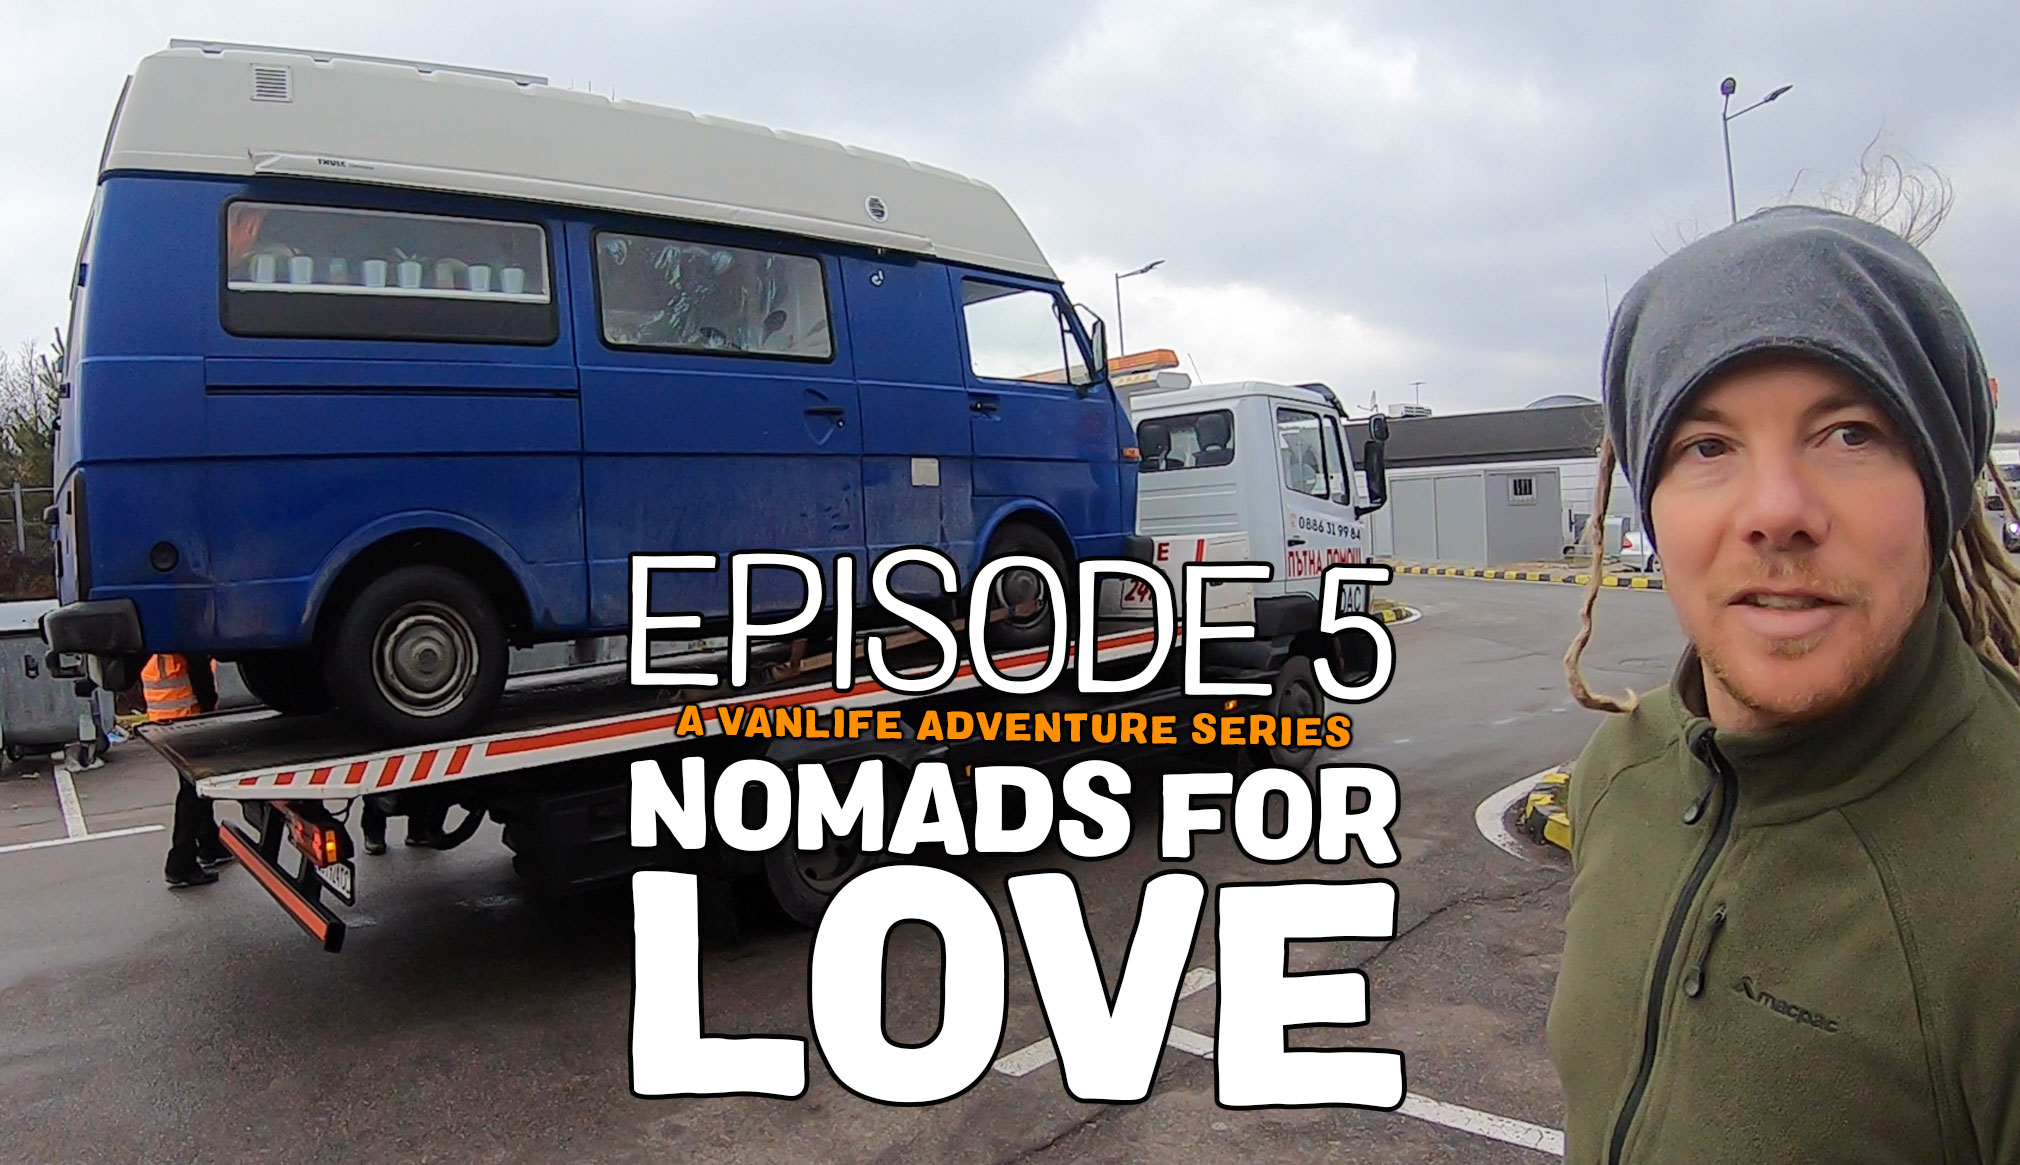 Nomads for love – episode 5